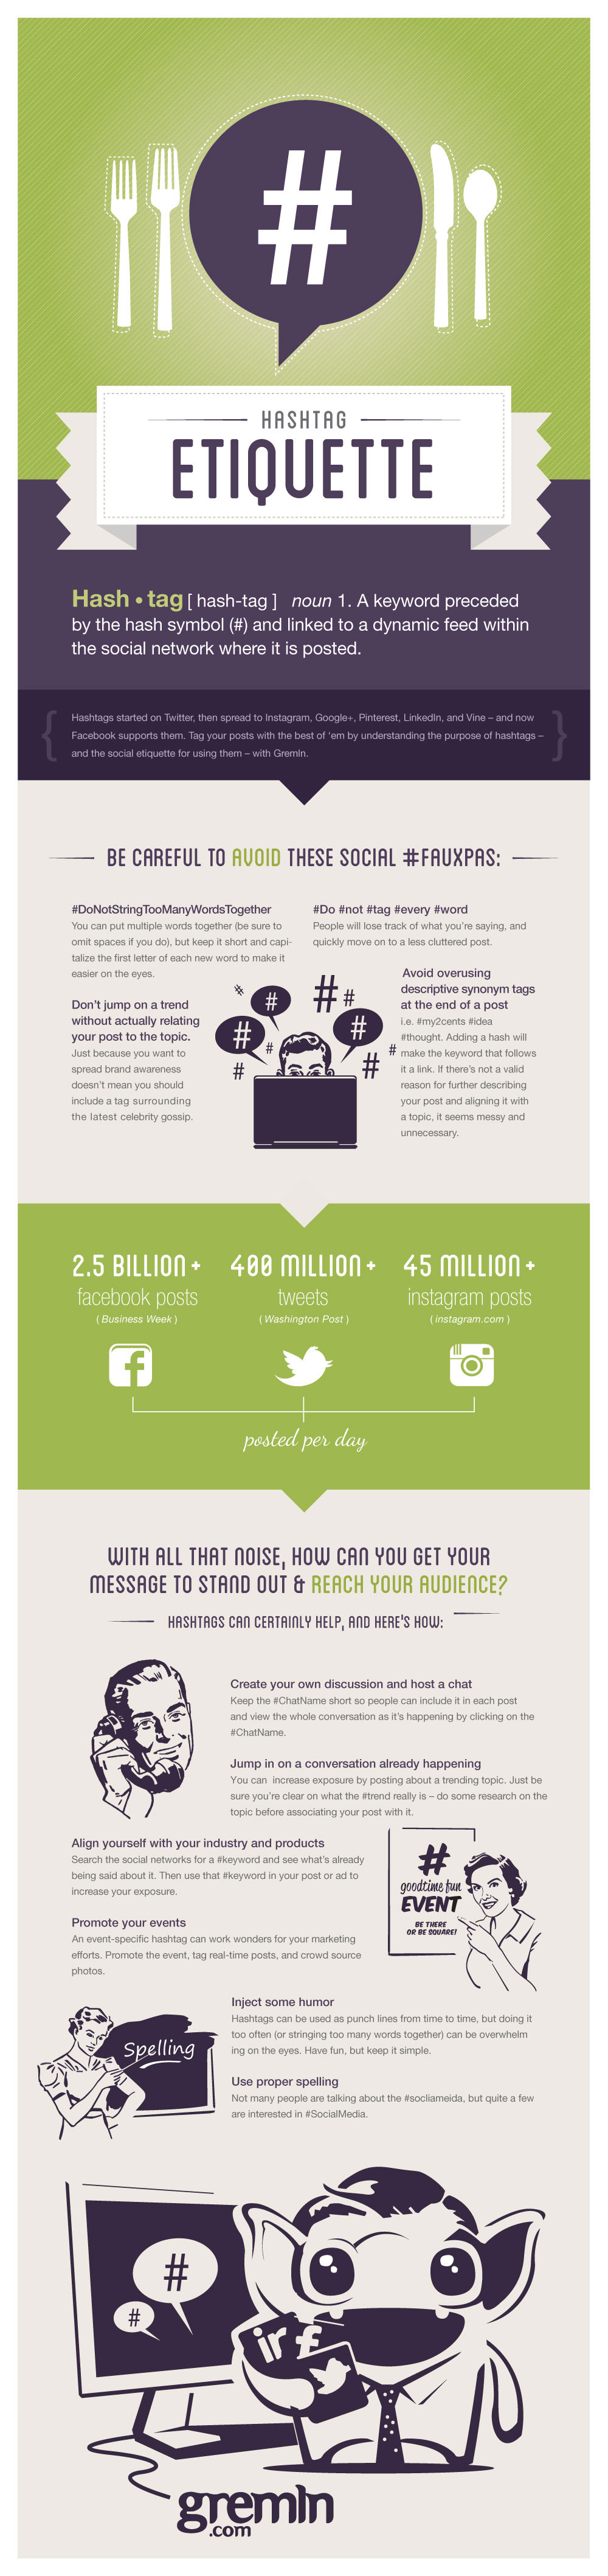 Mind Your Manners: Social Media Hashtag Etiquette [Infographic]